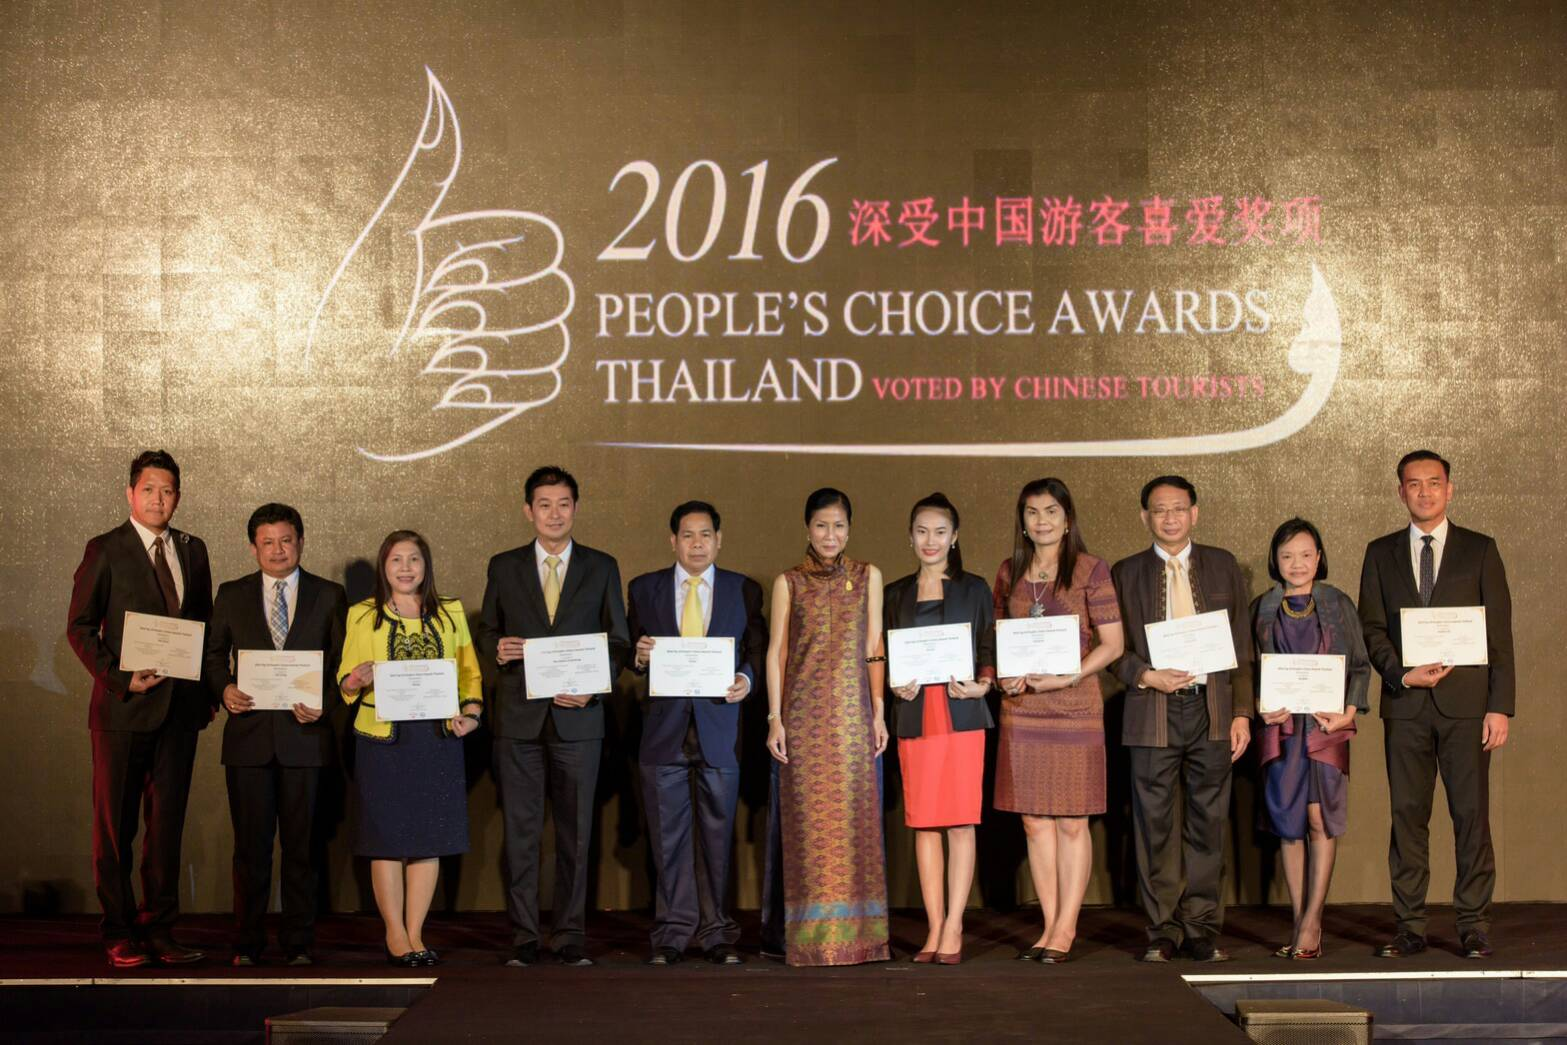 2016 People's Choice Awards Thailand Voted by Chinese Tourists